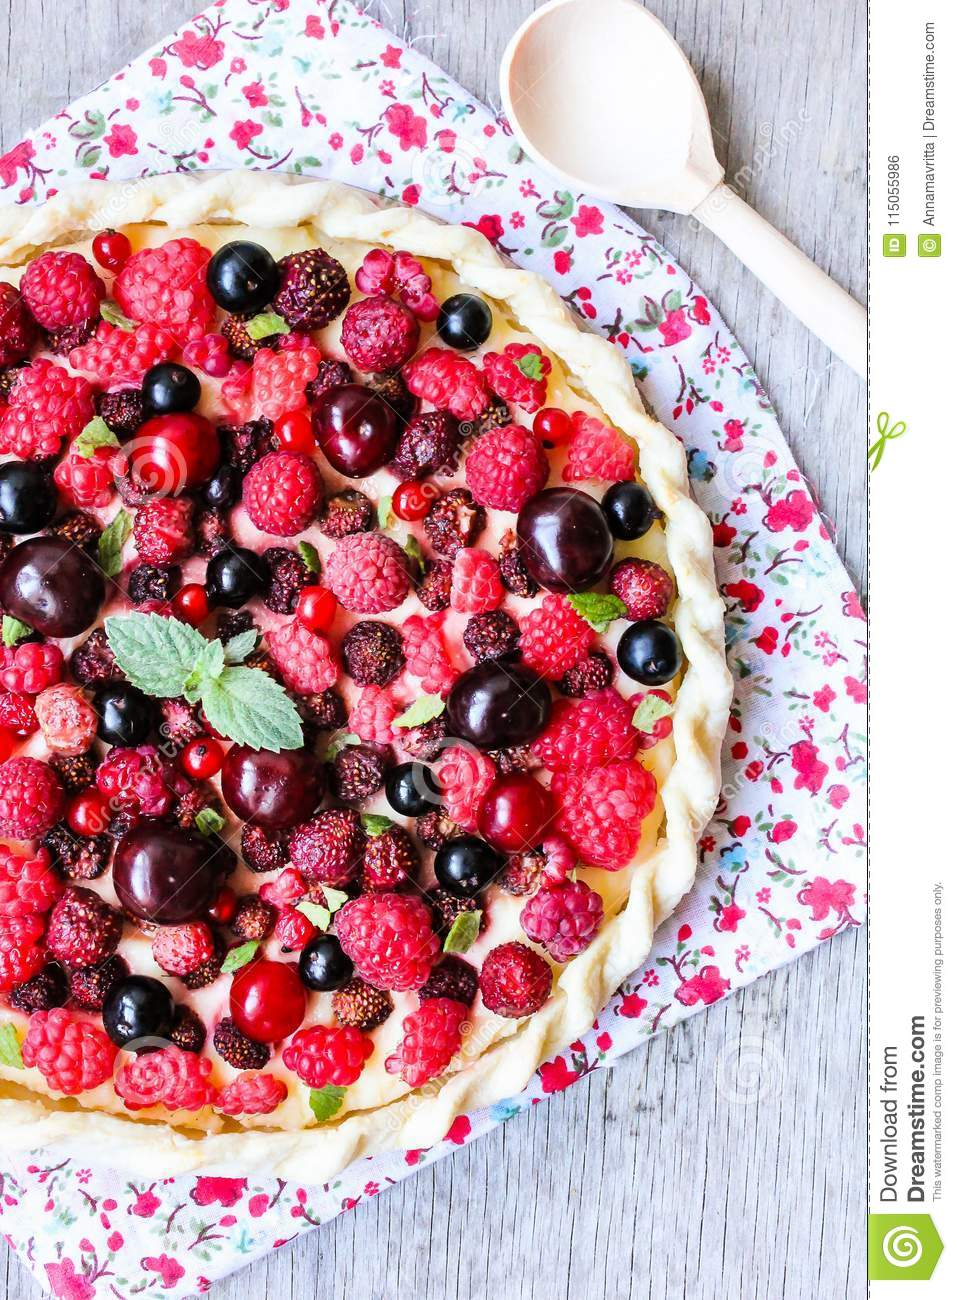 Pizza pie with mascarpone cream cheese, raspberry, black currant, strawberry, cherry on a wooden table. Homemade pie. Fruit pizza.